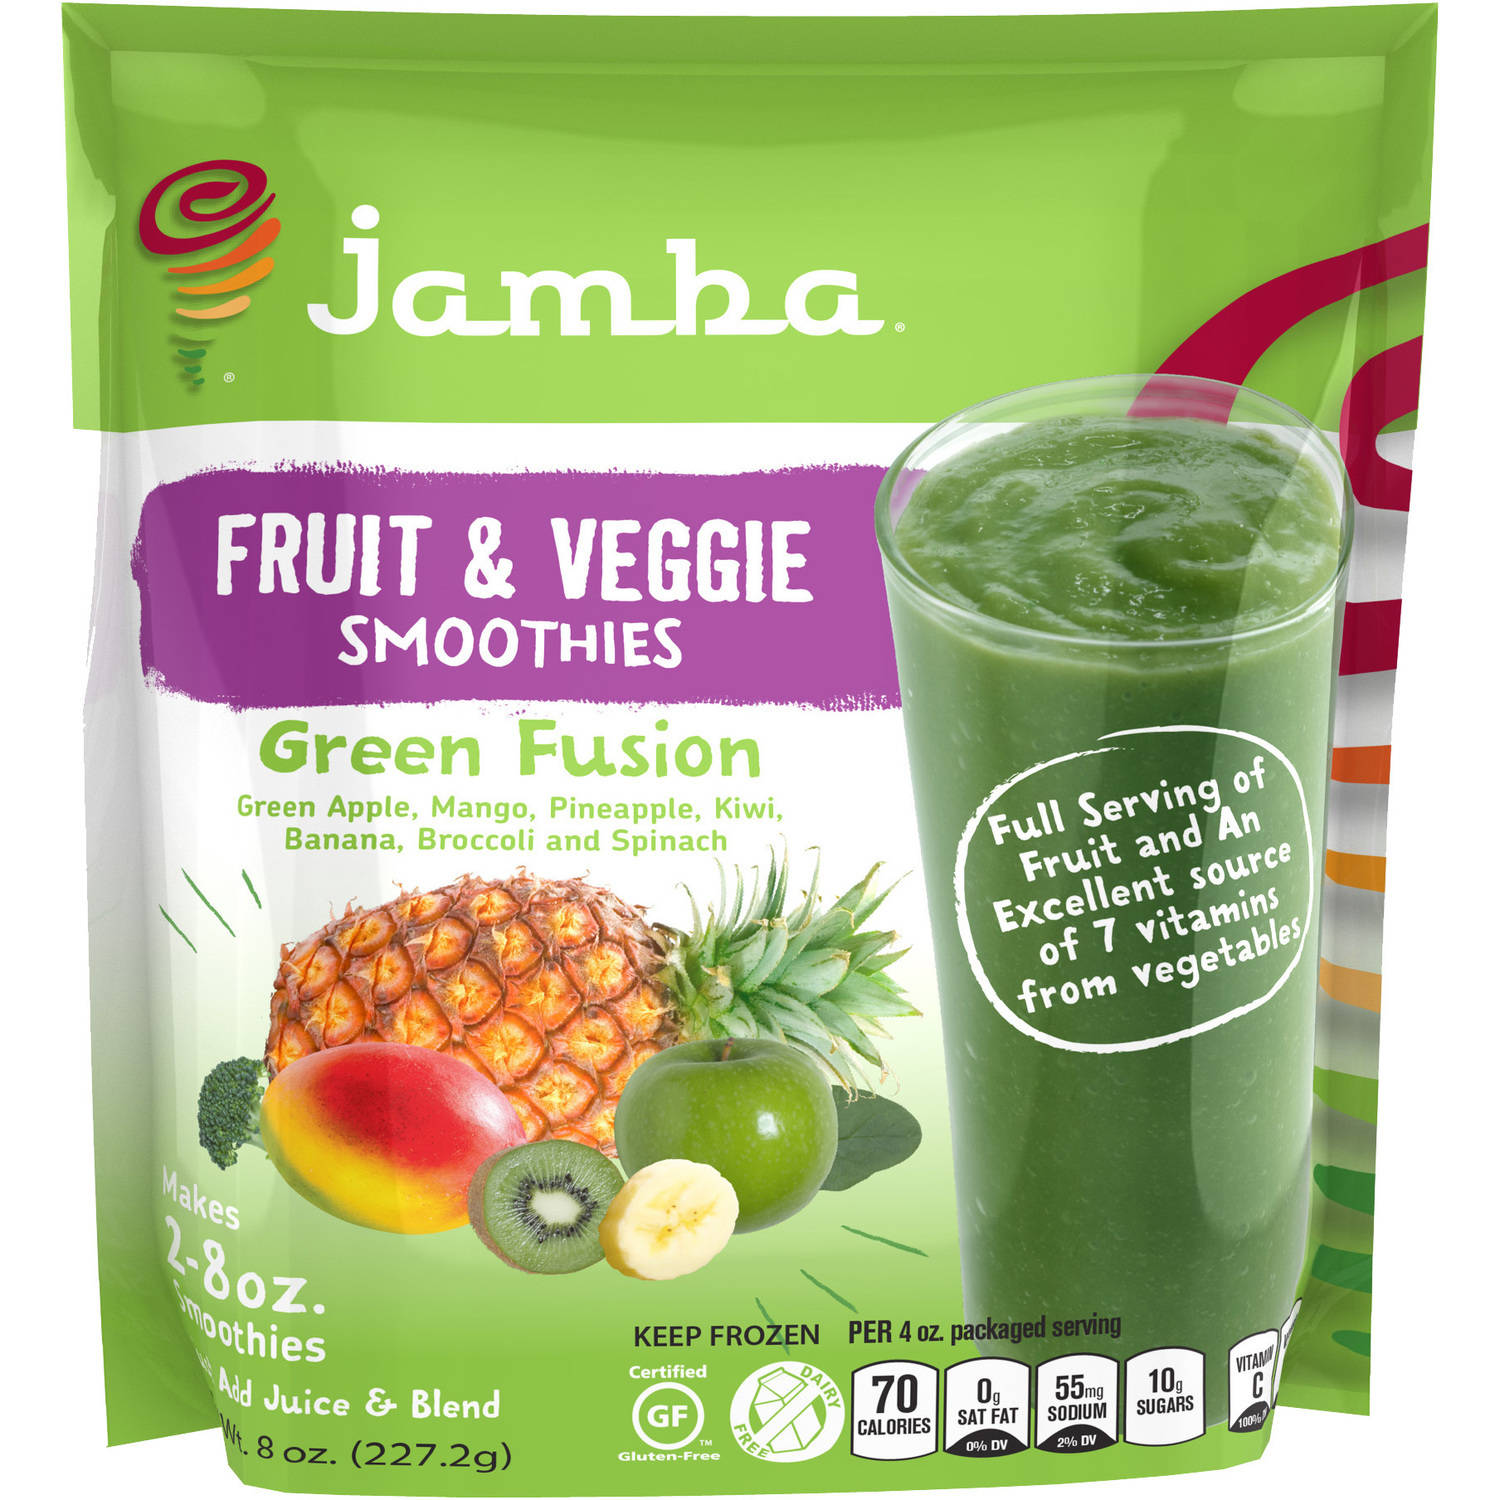 Jamba Fruit & Veggie Green Fusion Smoothies, 8 oz